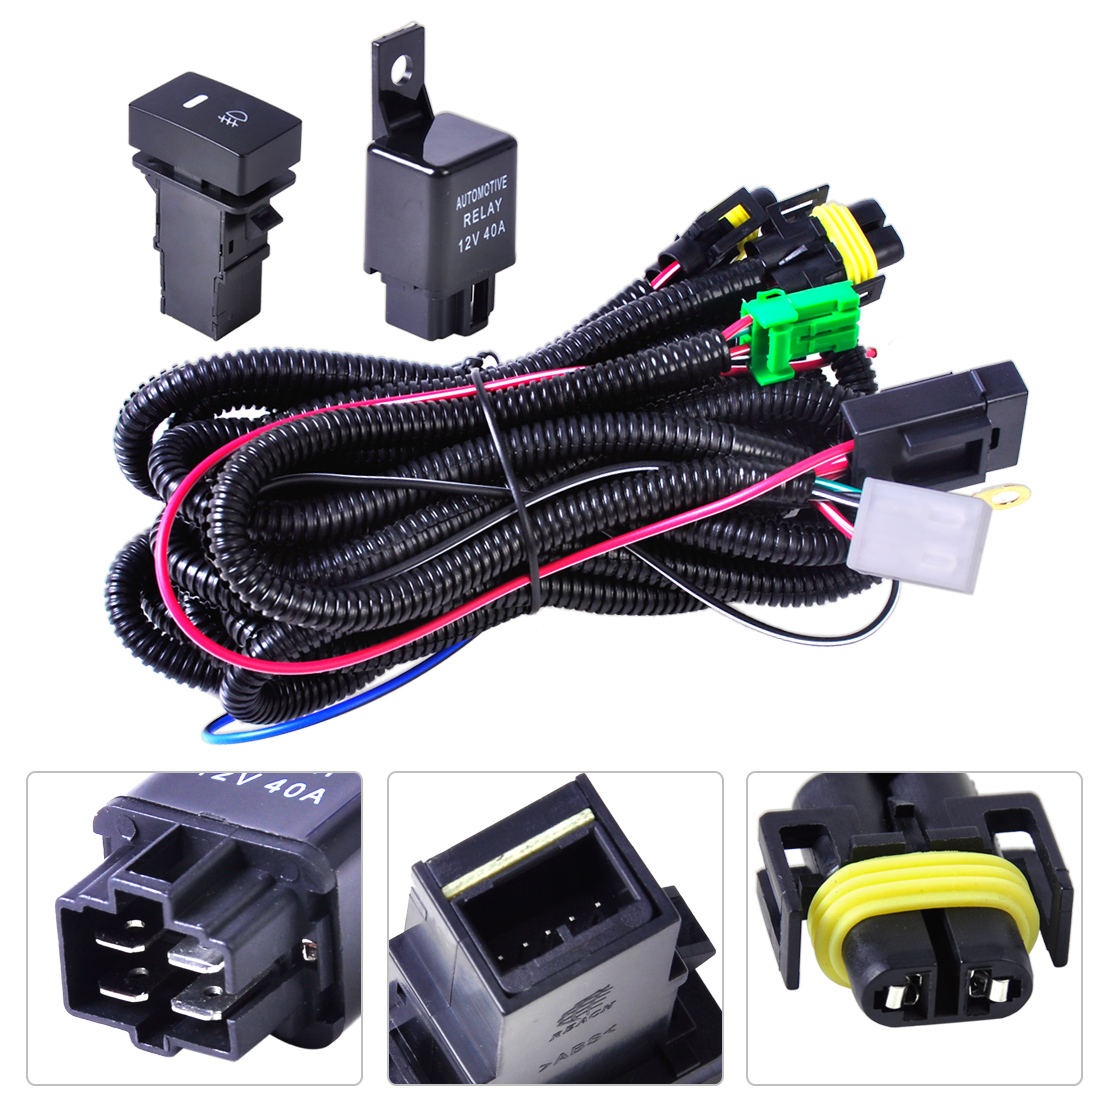 ford wiring harness reviews online shopping ford wiring harness new wiring harness sockets wire switch set for h11 fog light lamp for ford focus 2008 2014 acura tsx 11 14 nissan cube 2009 2015